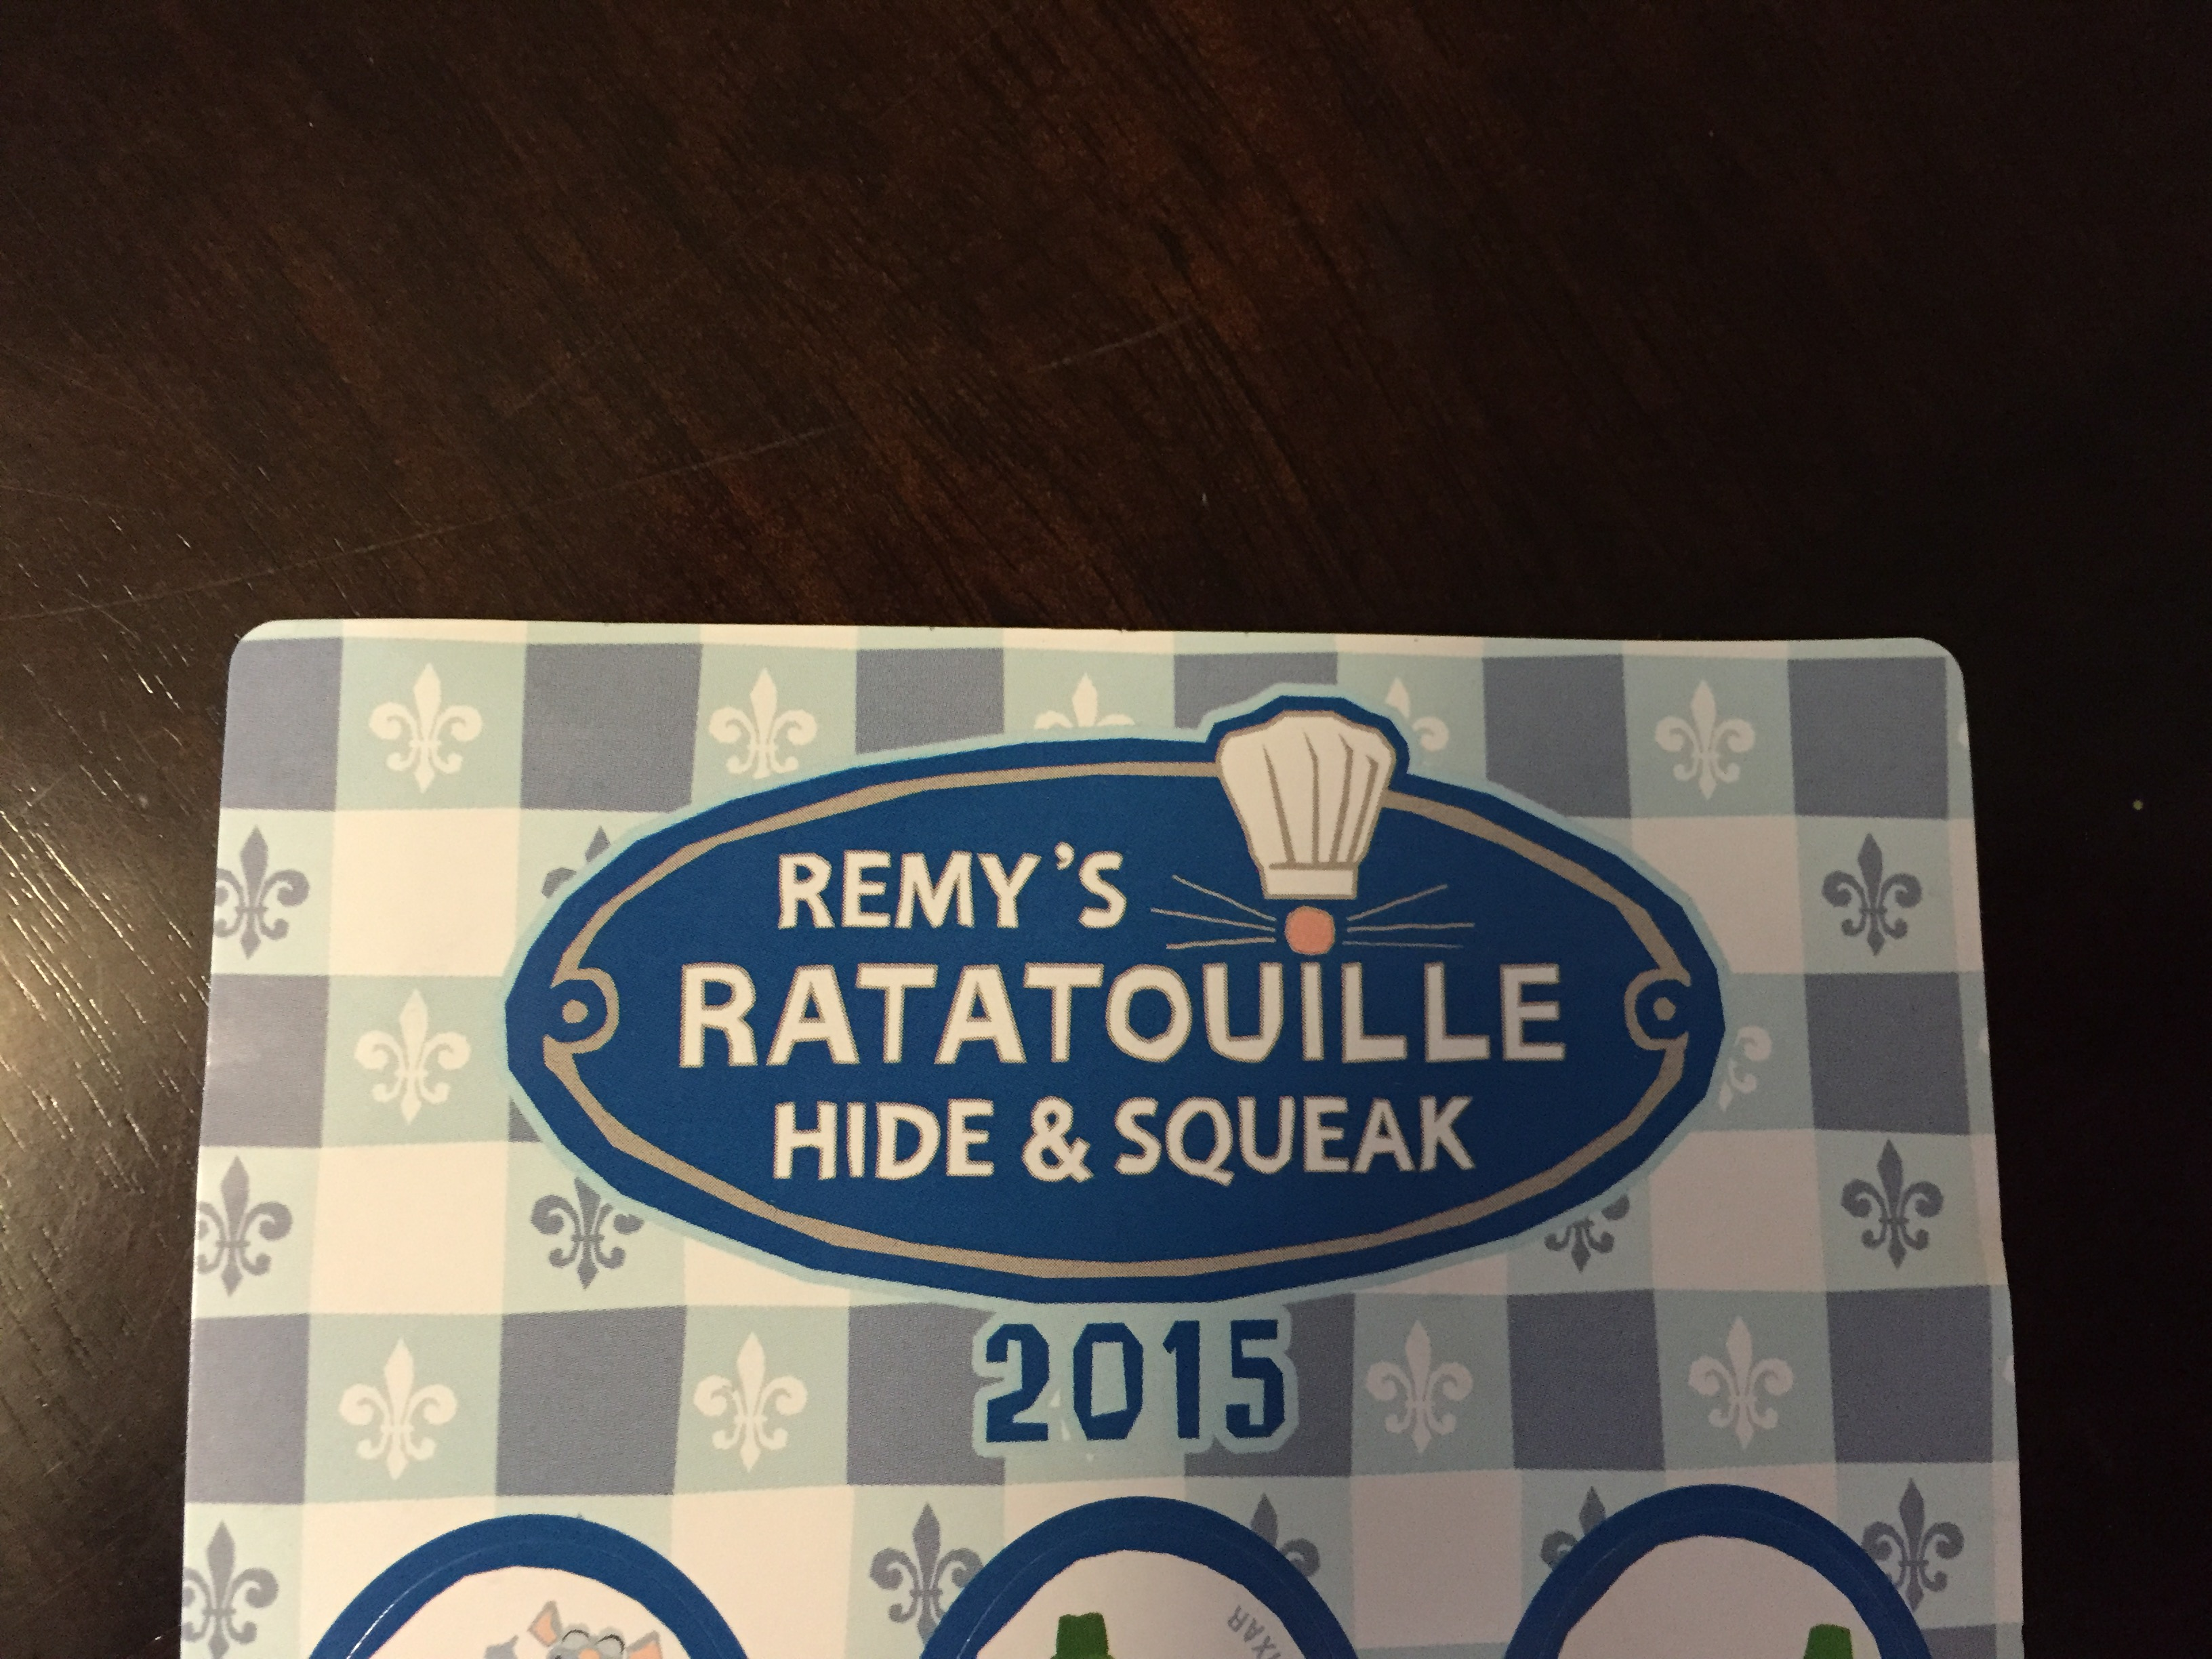 Remy's Ratatouille Hide & Squeak during Epcot's International Food & Wine Festival